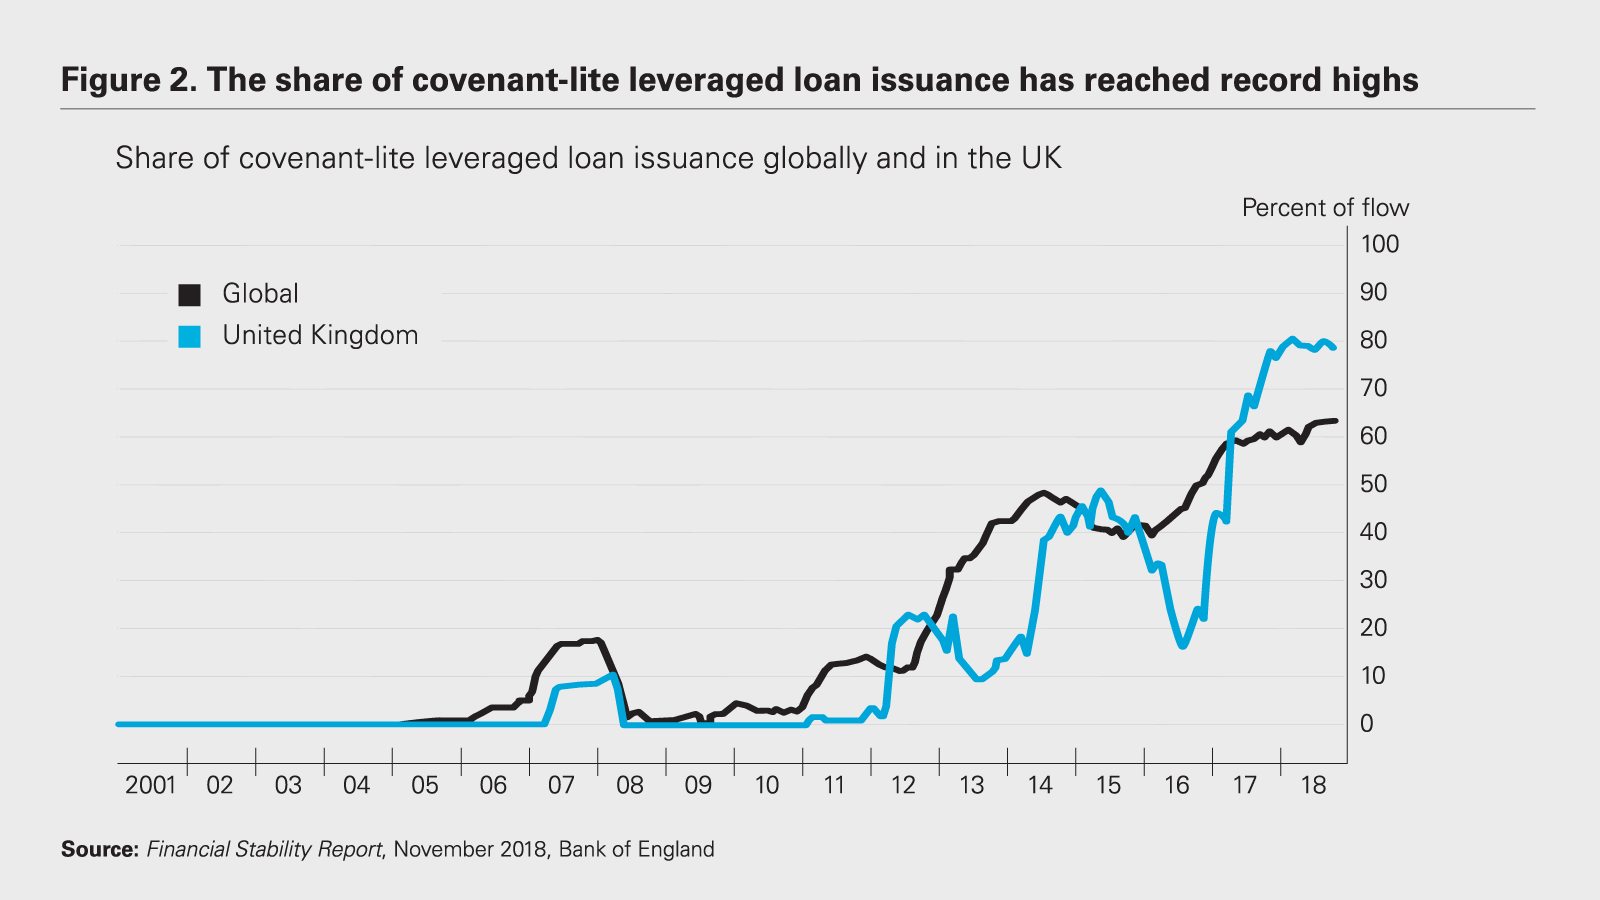 The share of covenant-lite leveraged loan issuance has reached record highs chart